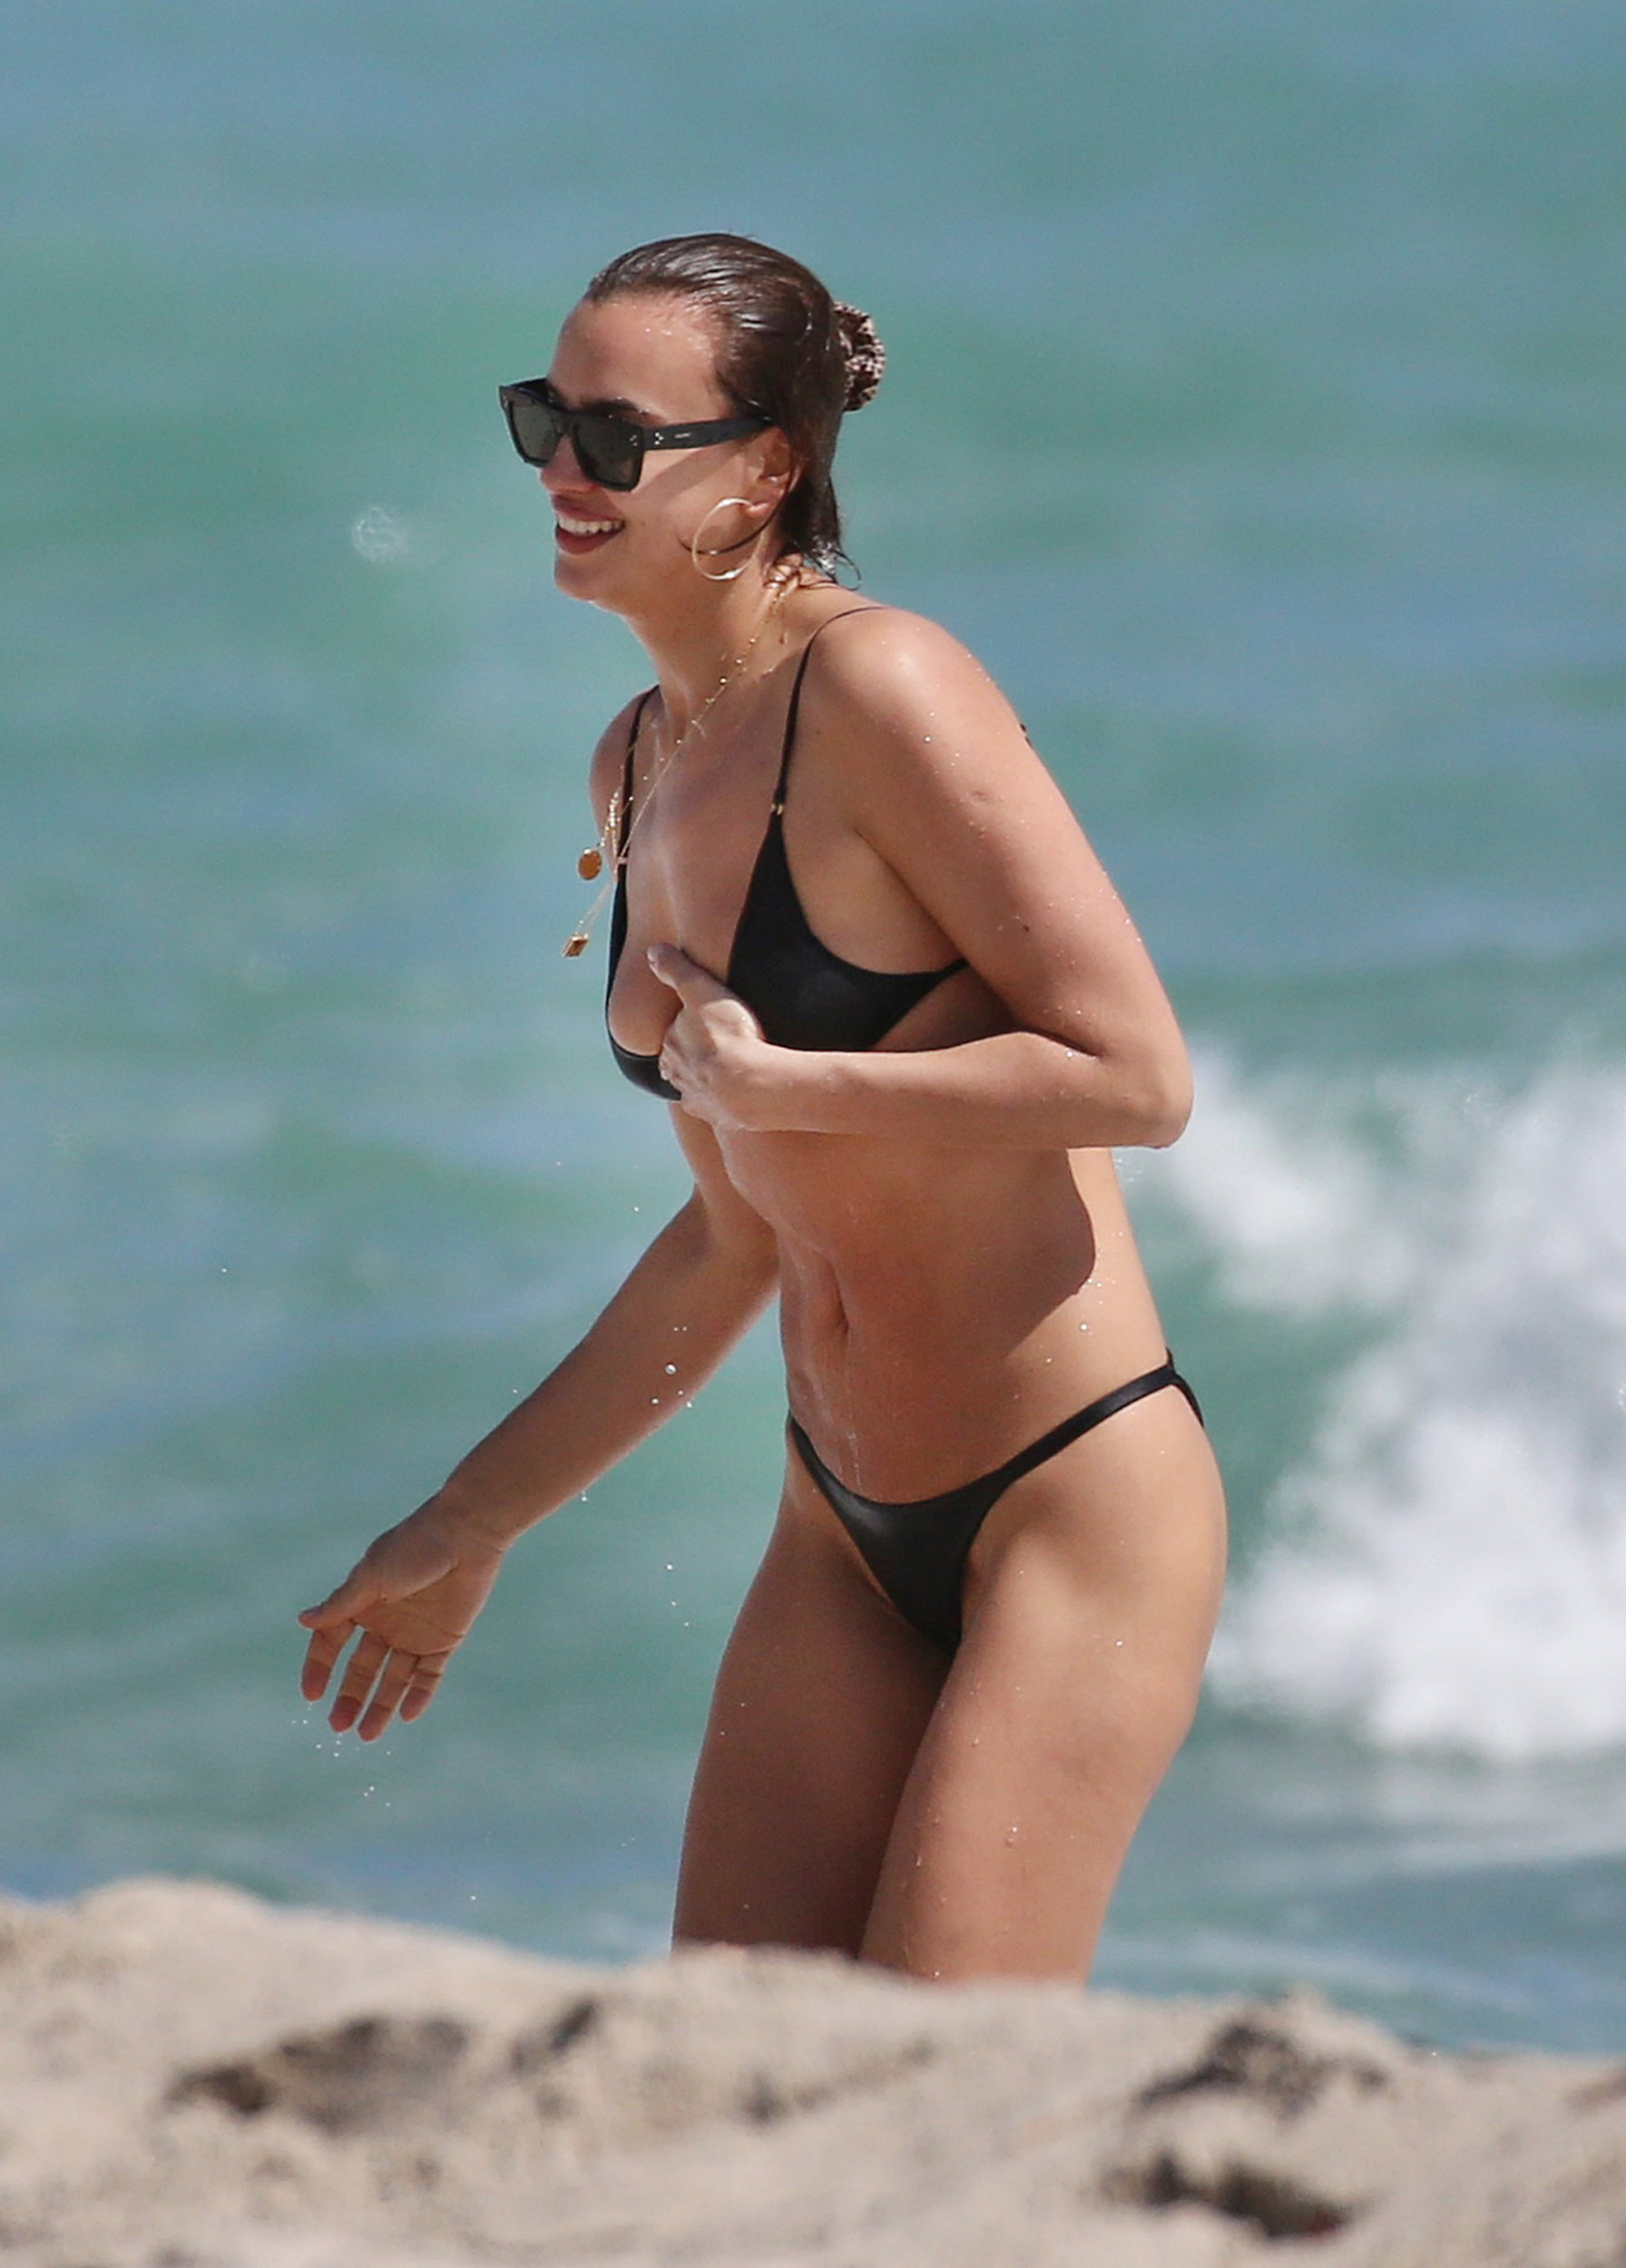 EXCLUSIVE: *NO WEB UNTIL 2045 GMT MARCH 8TH* Supermodel Irina Shayk narrowly avoids a wardrobe malfunction in a tiny black bikini as she hits the beach in Miami. The pictures of Irina showing off her sensational curves may explain why boyfriend Bradley Cooper is so smitten - and dispel Internet gossip that he???s fallen for A Star is Born co-star Lady Gaga. The 33-year-old Russian supermodel, who shares daughter Lea with the 44-year-old actor, flaunted her impossibly long legs as well as her toned midsection and her ample cleavage in the barely-there black swimwear. 07 Mar 2019 Pictured: Irina Shayk. Photo credit: MEGA TheMegaAgency.com +1 888 505 6342 (Mega Agency TagID: MEGA376513_001.jpg) [Photo via Mega Agency]